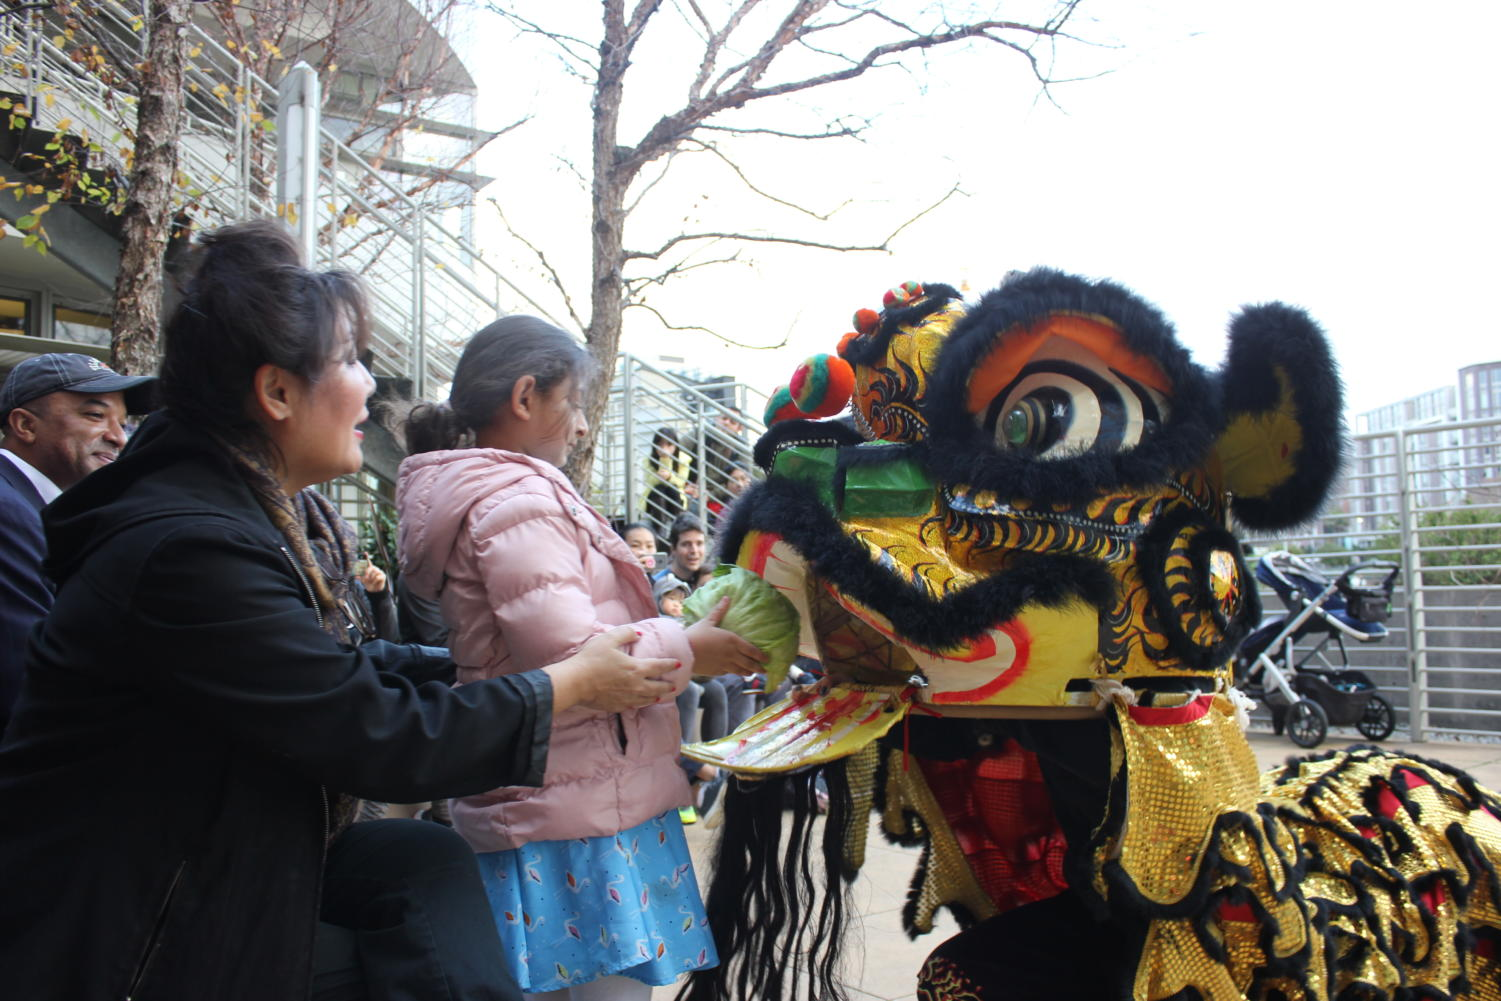 An audience member feeds cabbage to the lion to represent new luck in the new year.